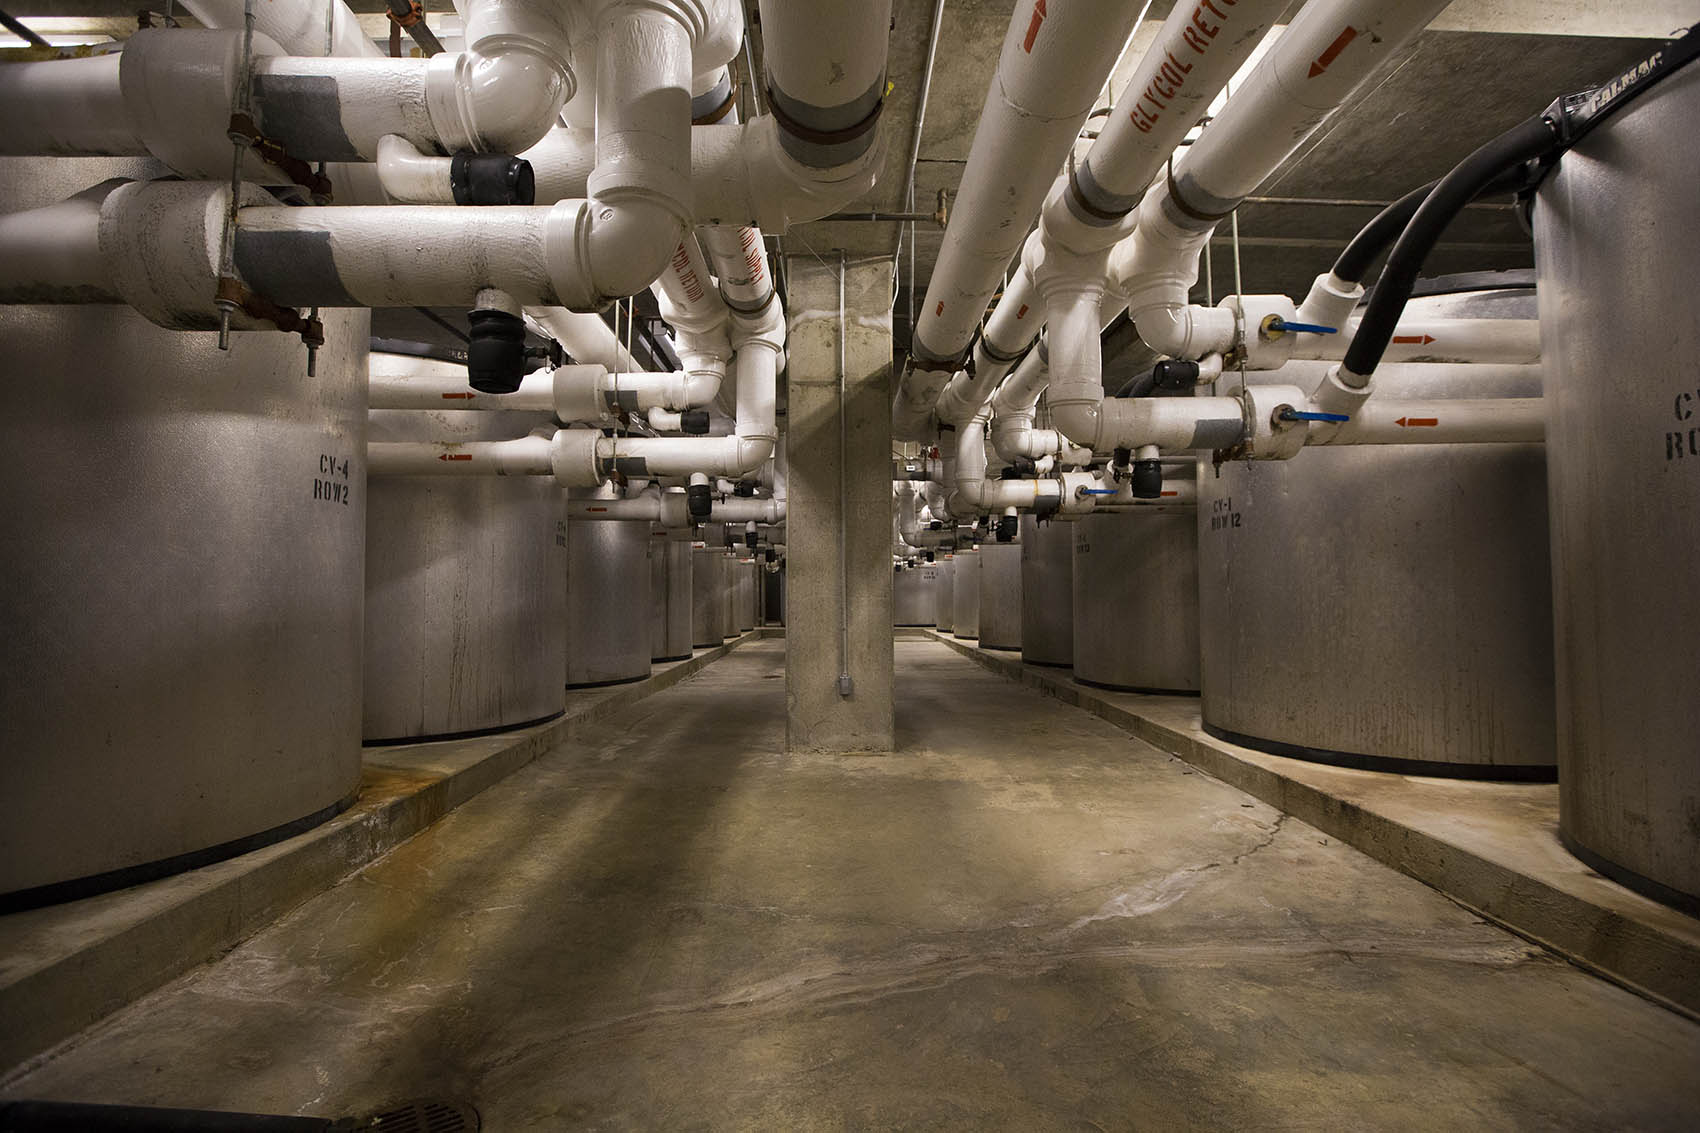 Sixty-five IceBank Energy Storage tanks in the basement of the Moakley Courthouse in Boston. (Jesse Costa/WBUR)